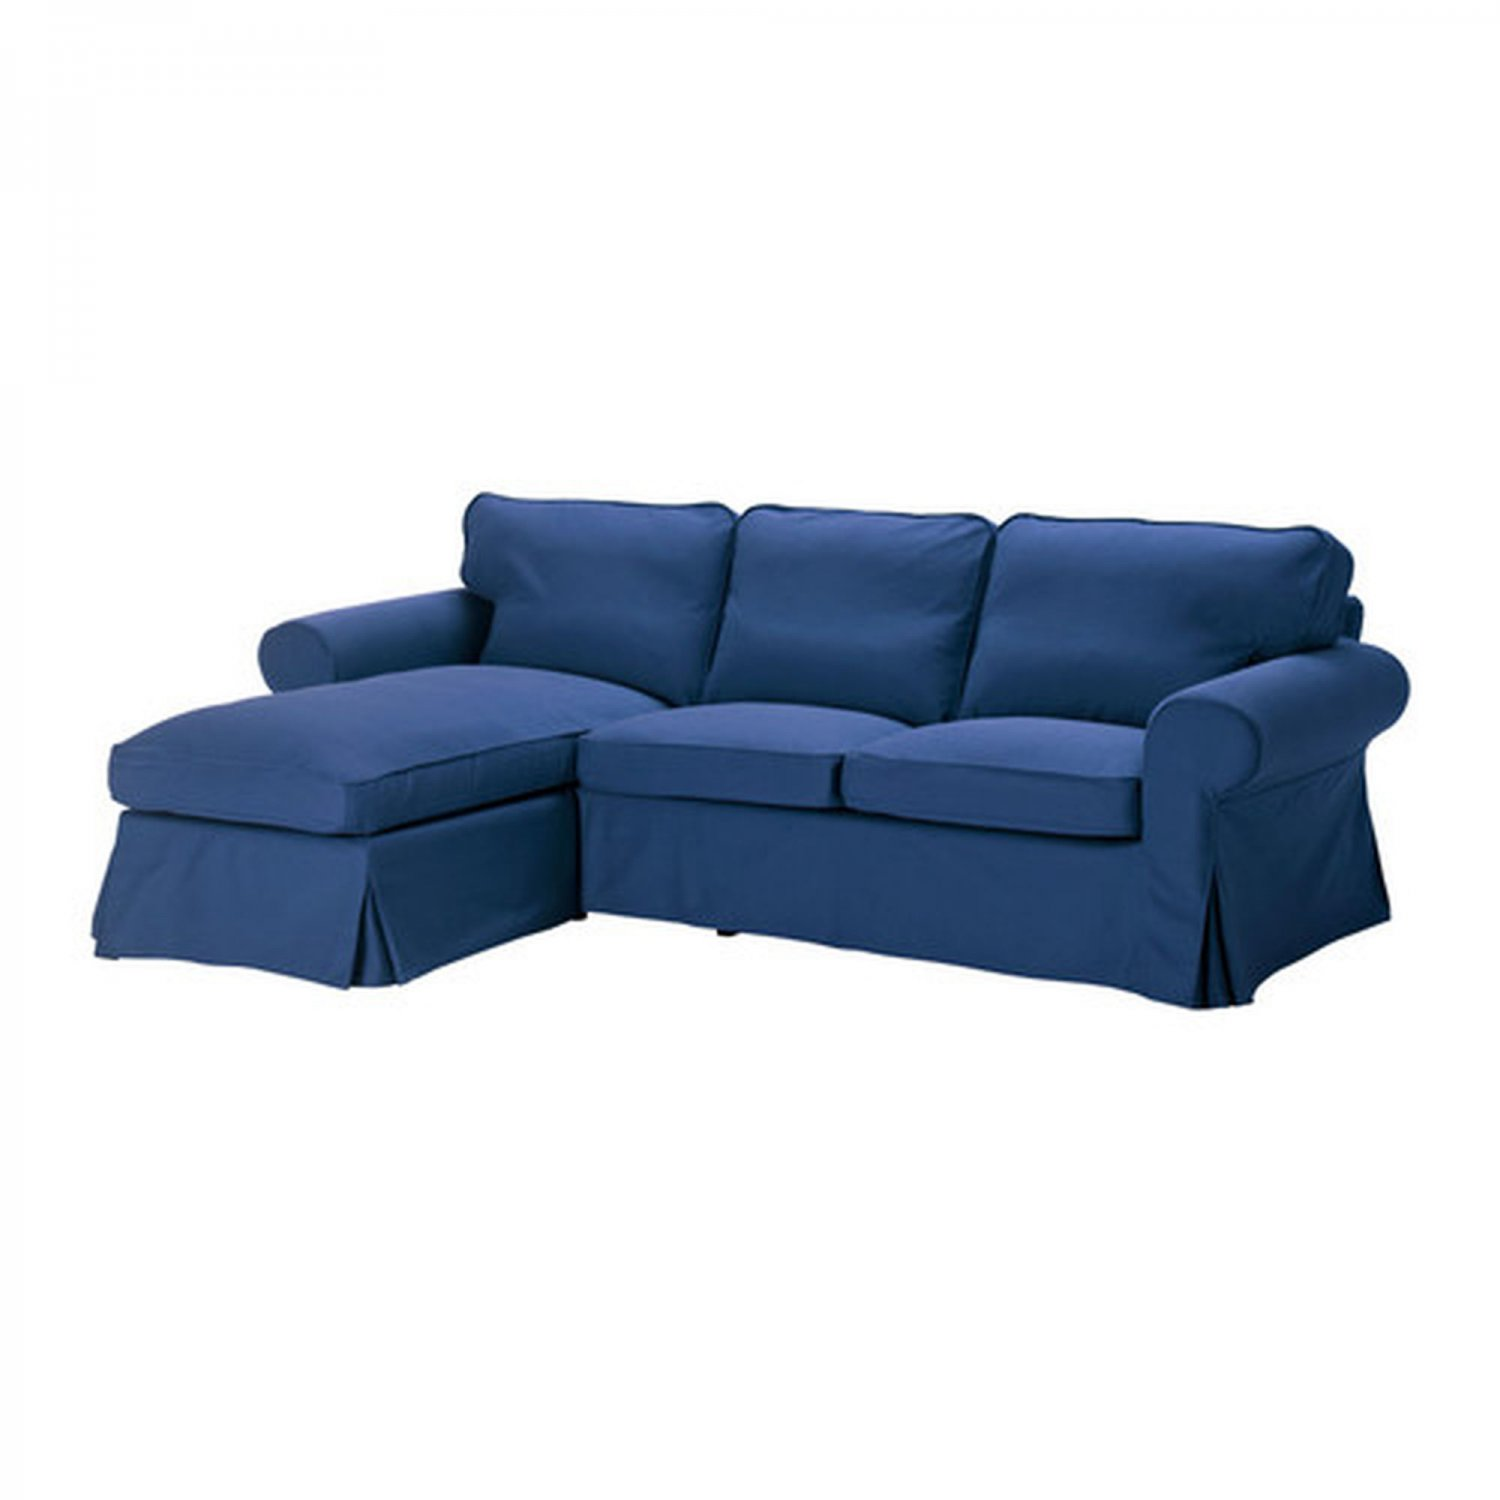 Ikea ektorp loveseat with chaise lounge cover slipcover idemo blue Cover for loveseat